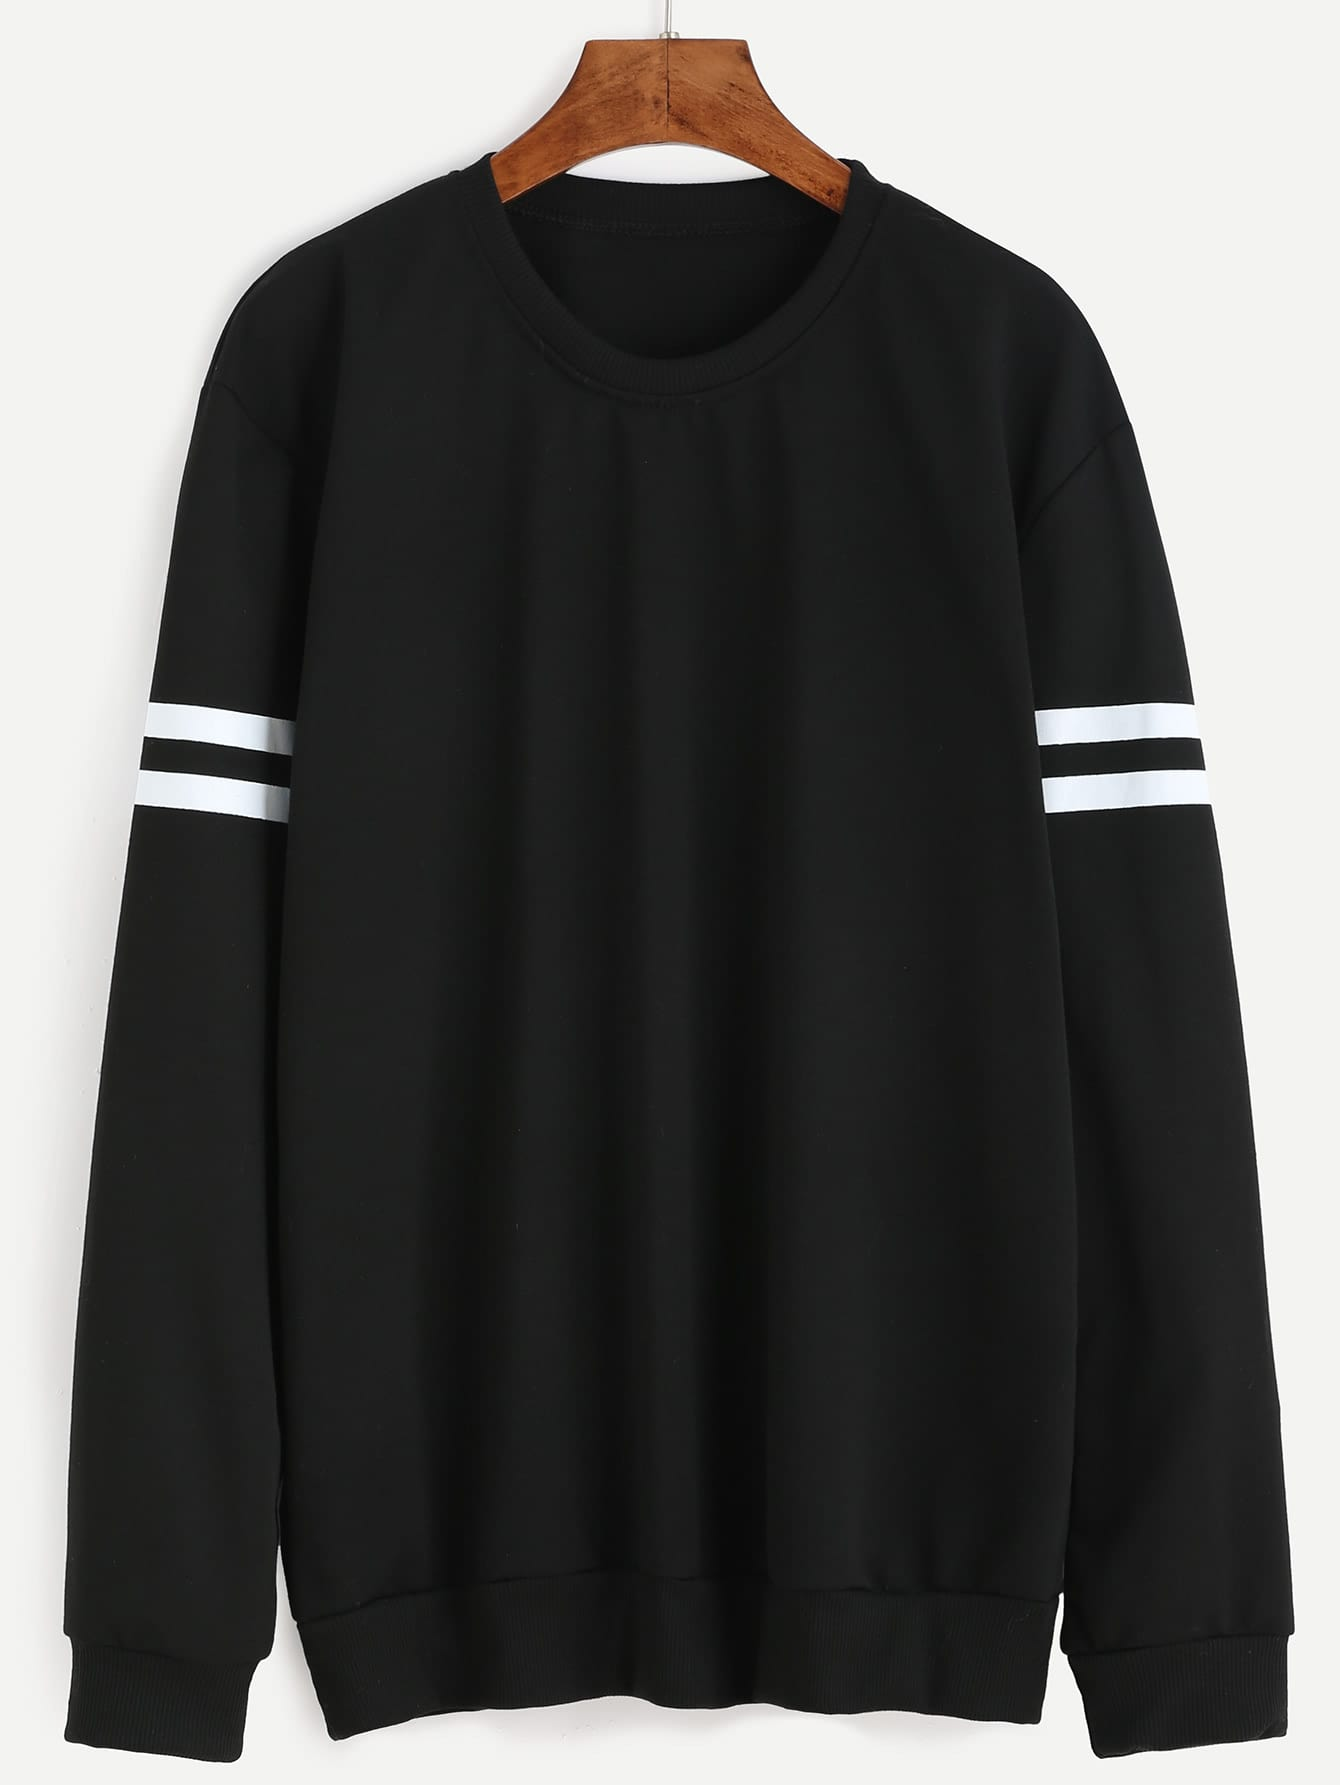 Black Varsity Striped Sweatshirt sweatshirt160804128